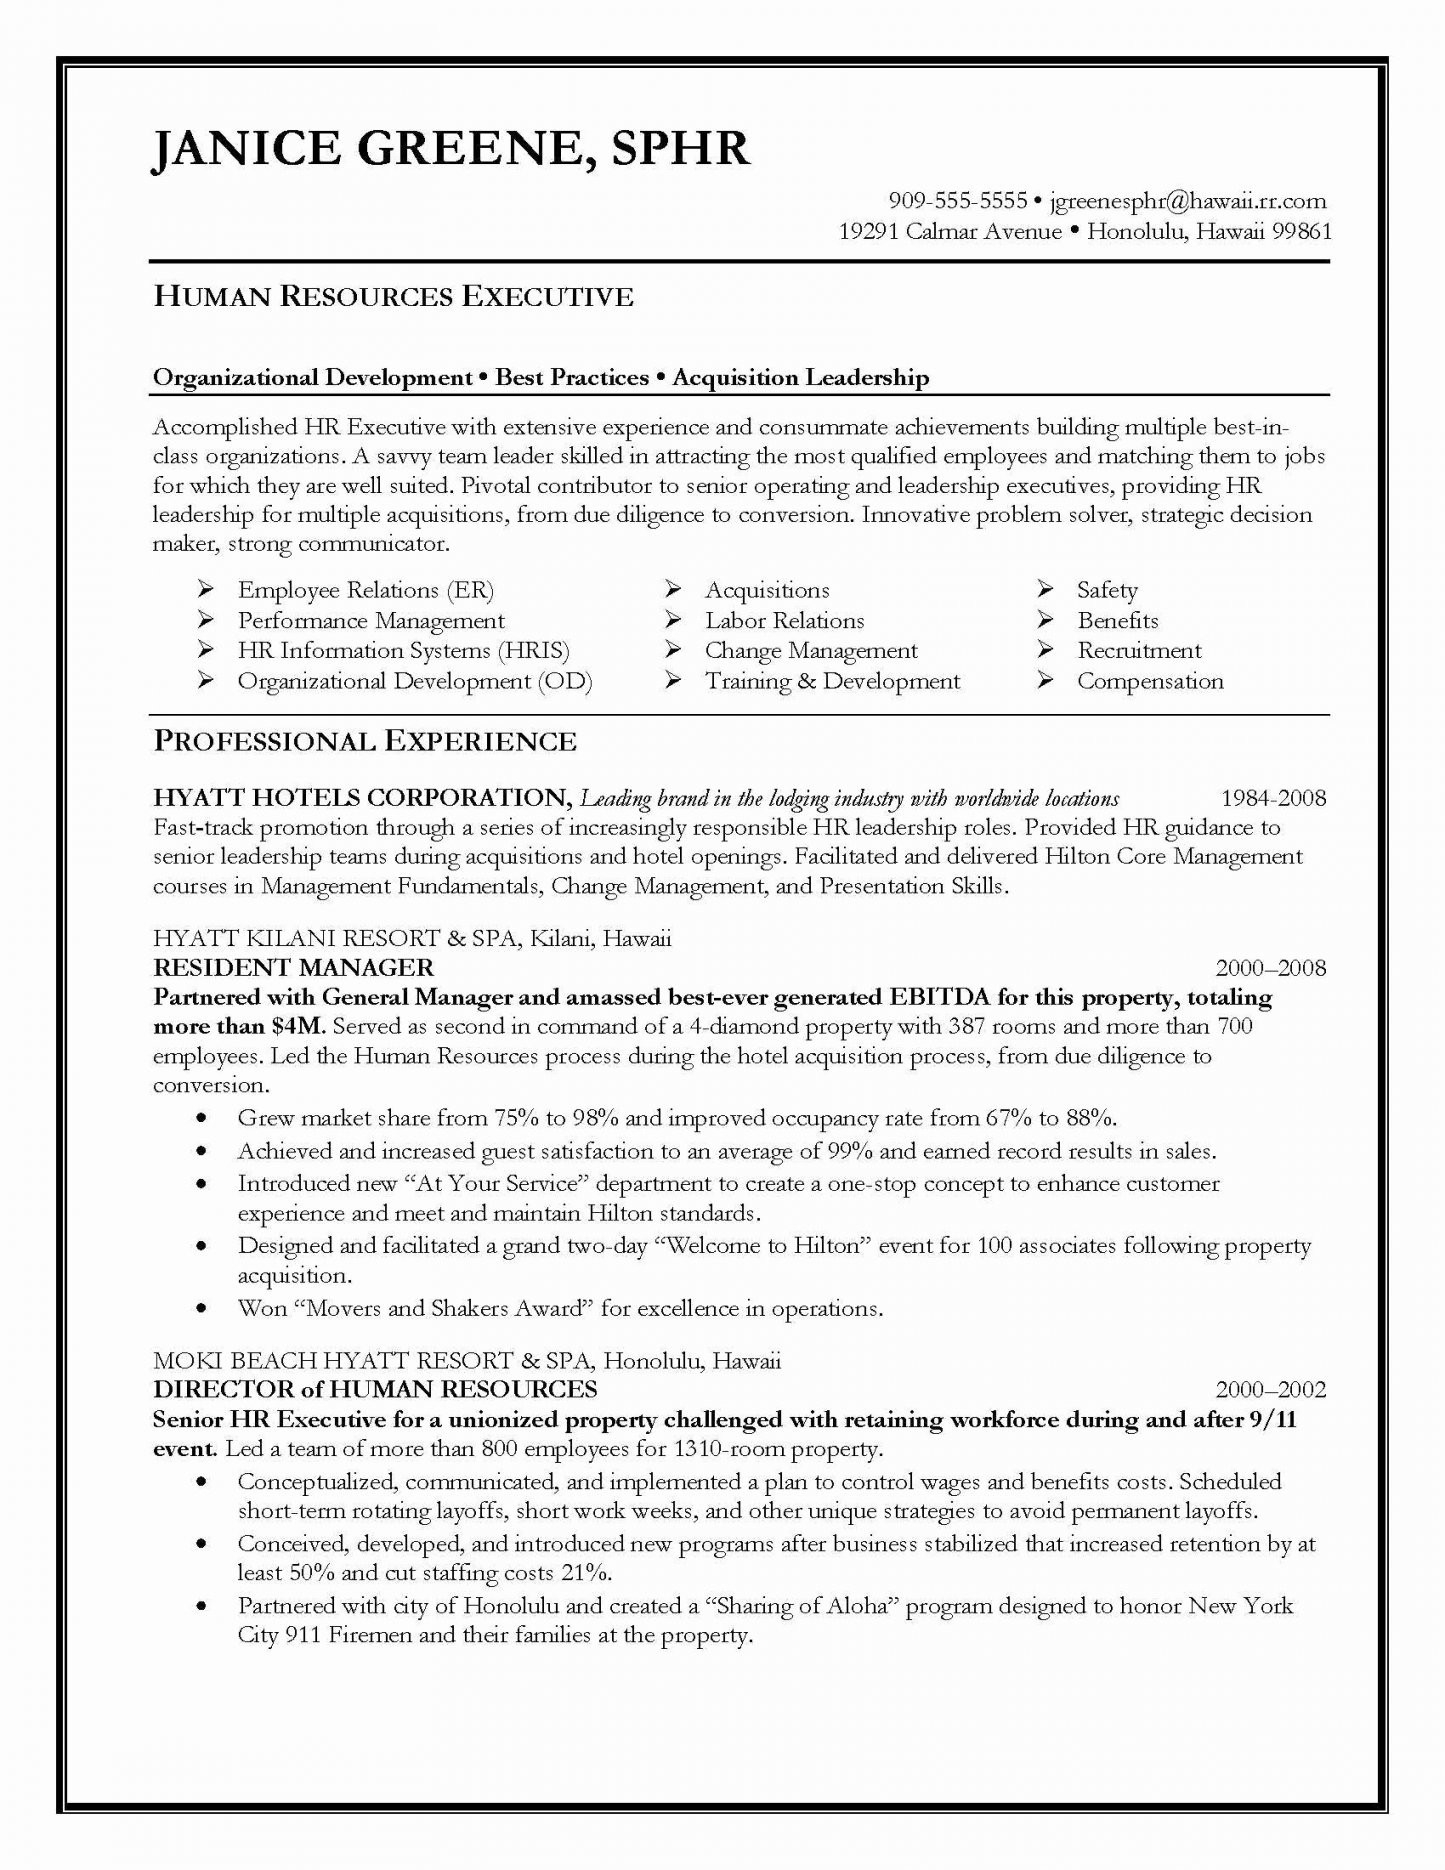 National Resume Writers association - 20 New Professional association Resume Writers